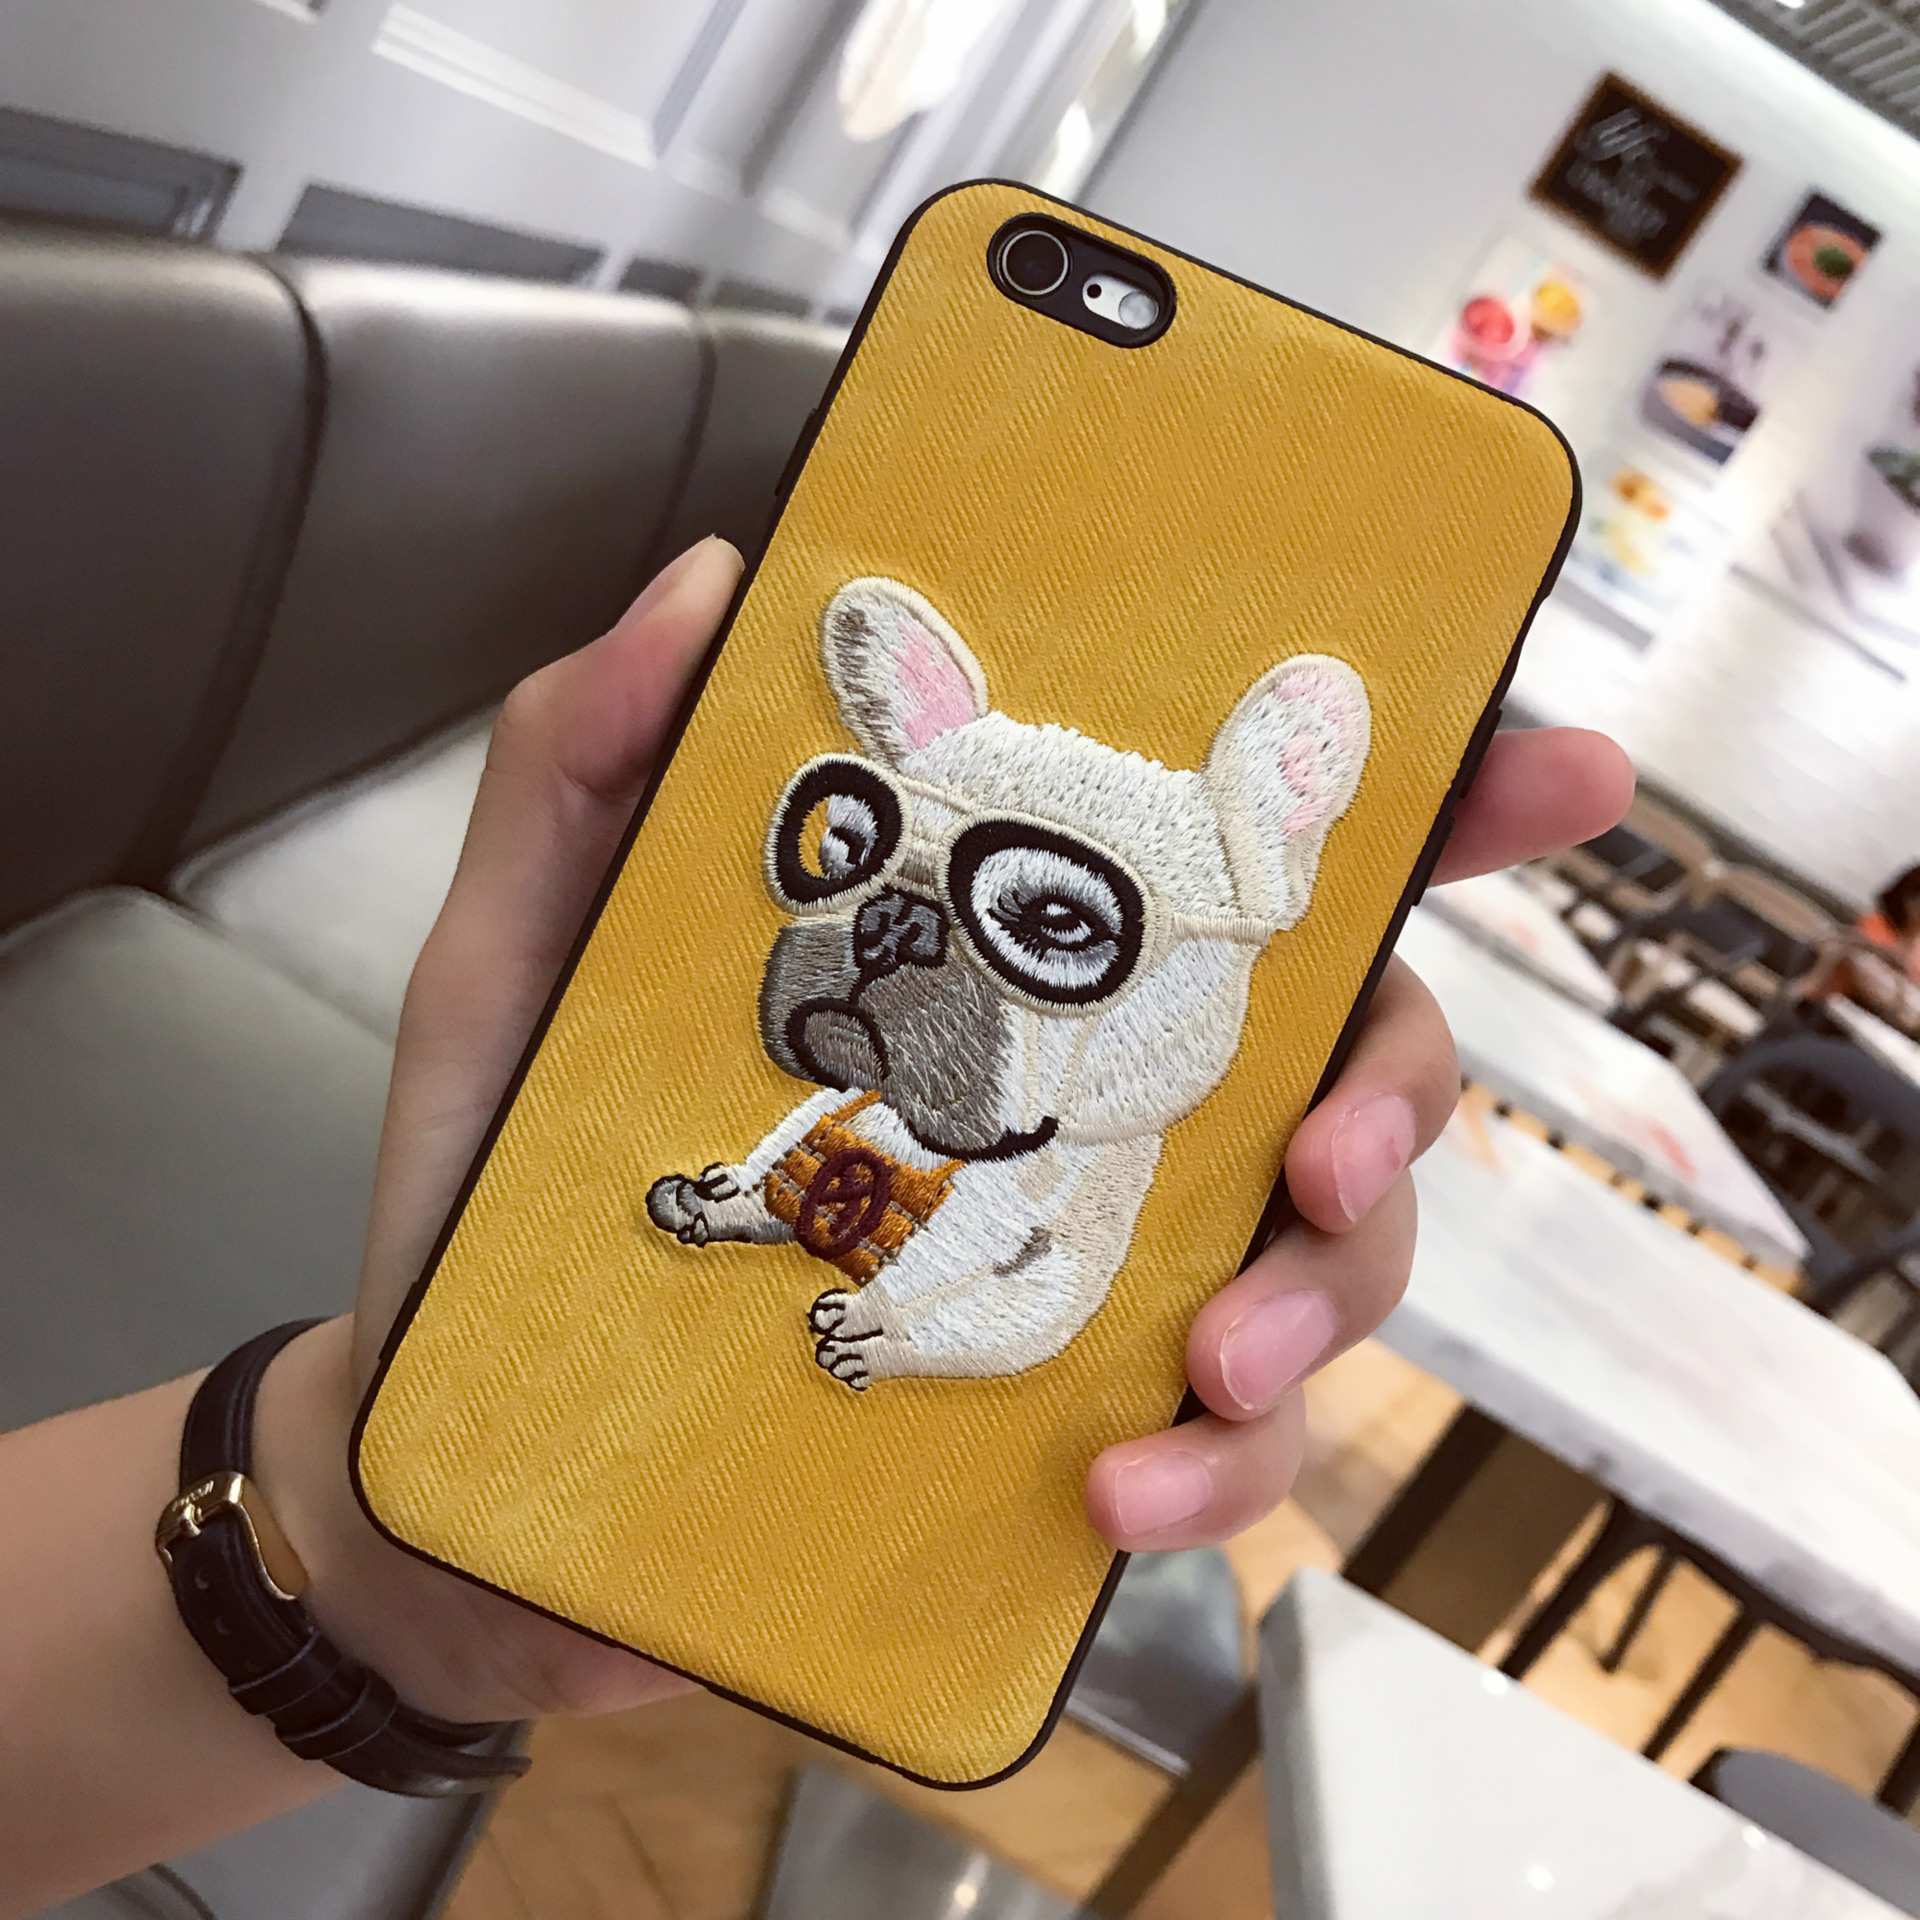 Cute 3D Embroidery Dog Teddy Pug HUSKY Dog Pet Cover Iphone X 6 6S 7 8 Plus Soft Mobile Phone Iphone XS Max XR